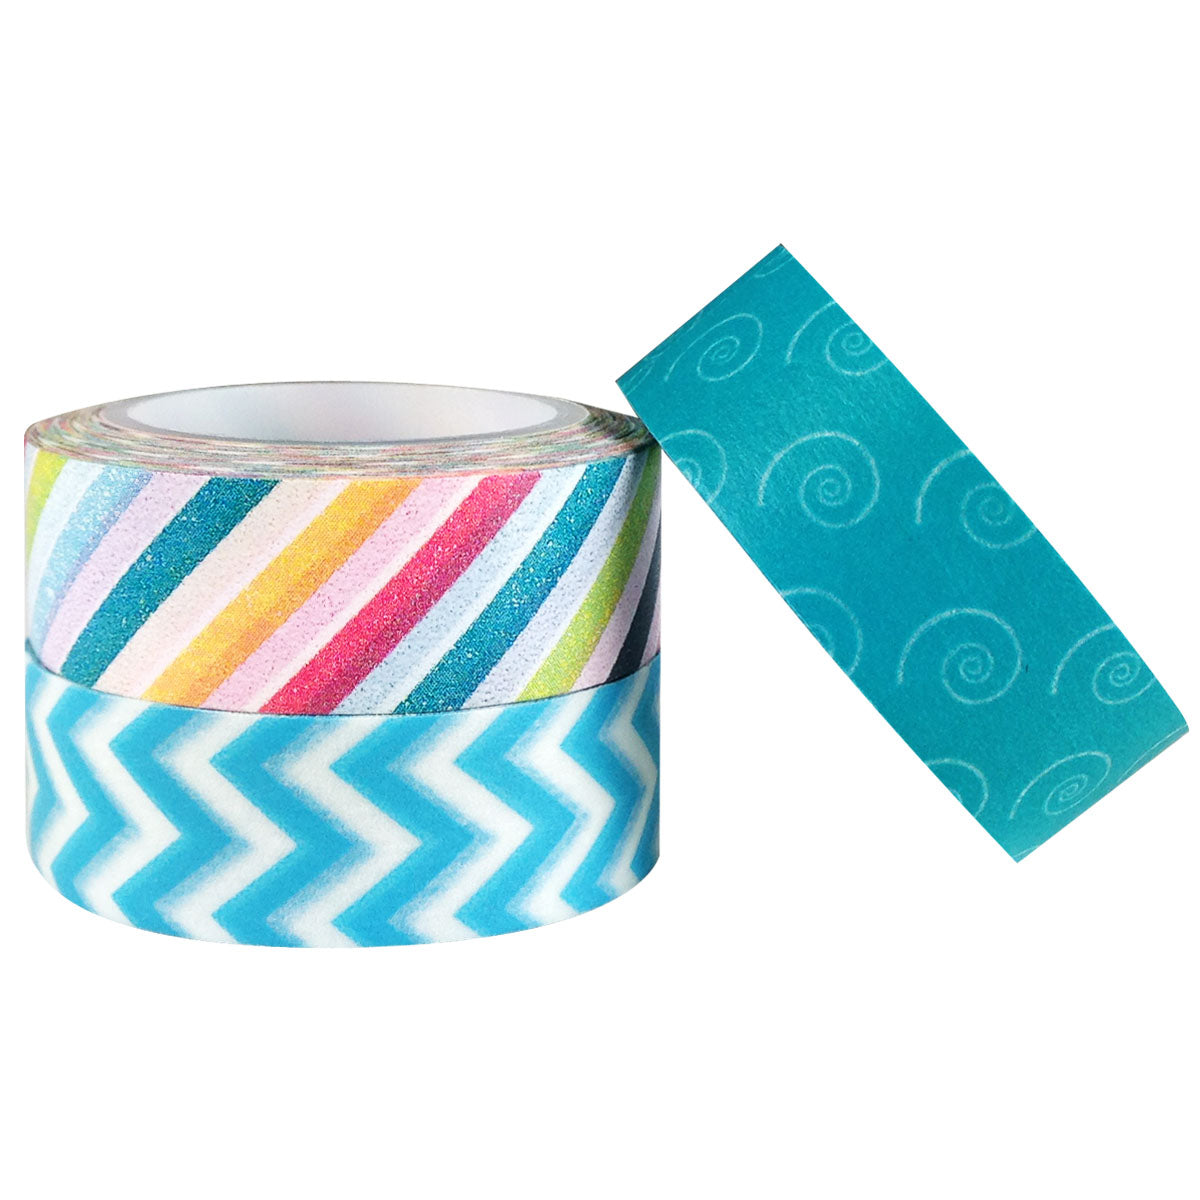 Winter Whirl Japanese Washi Masking Tape (set of 3)